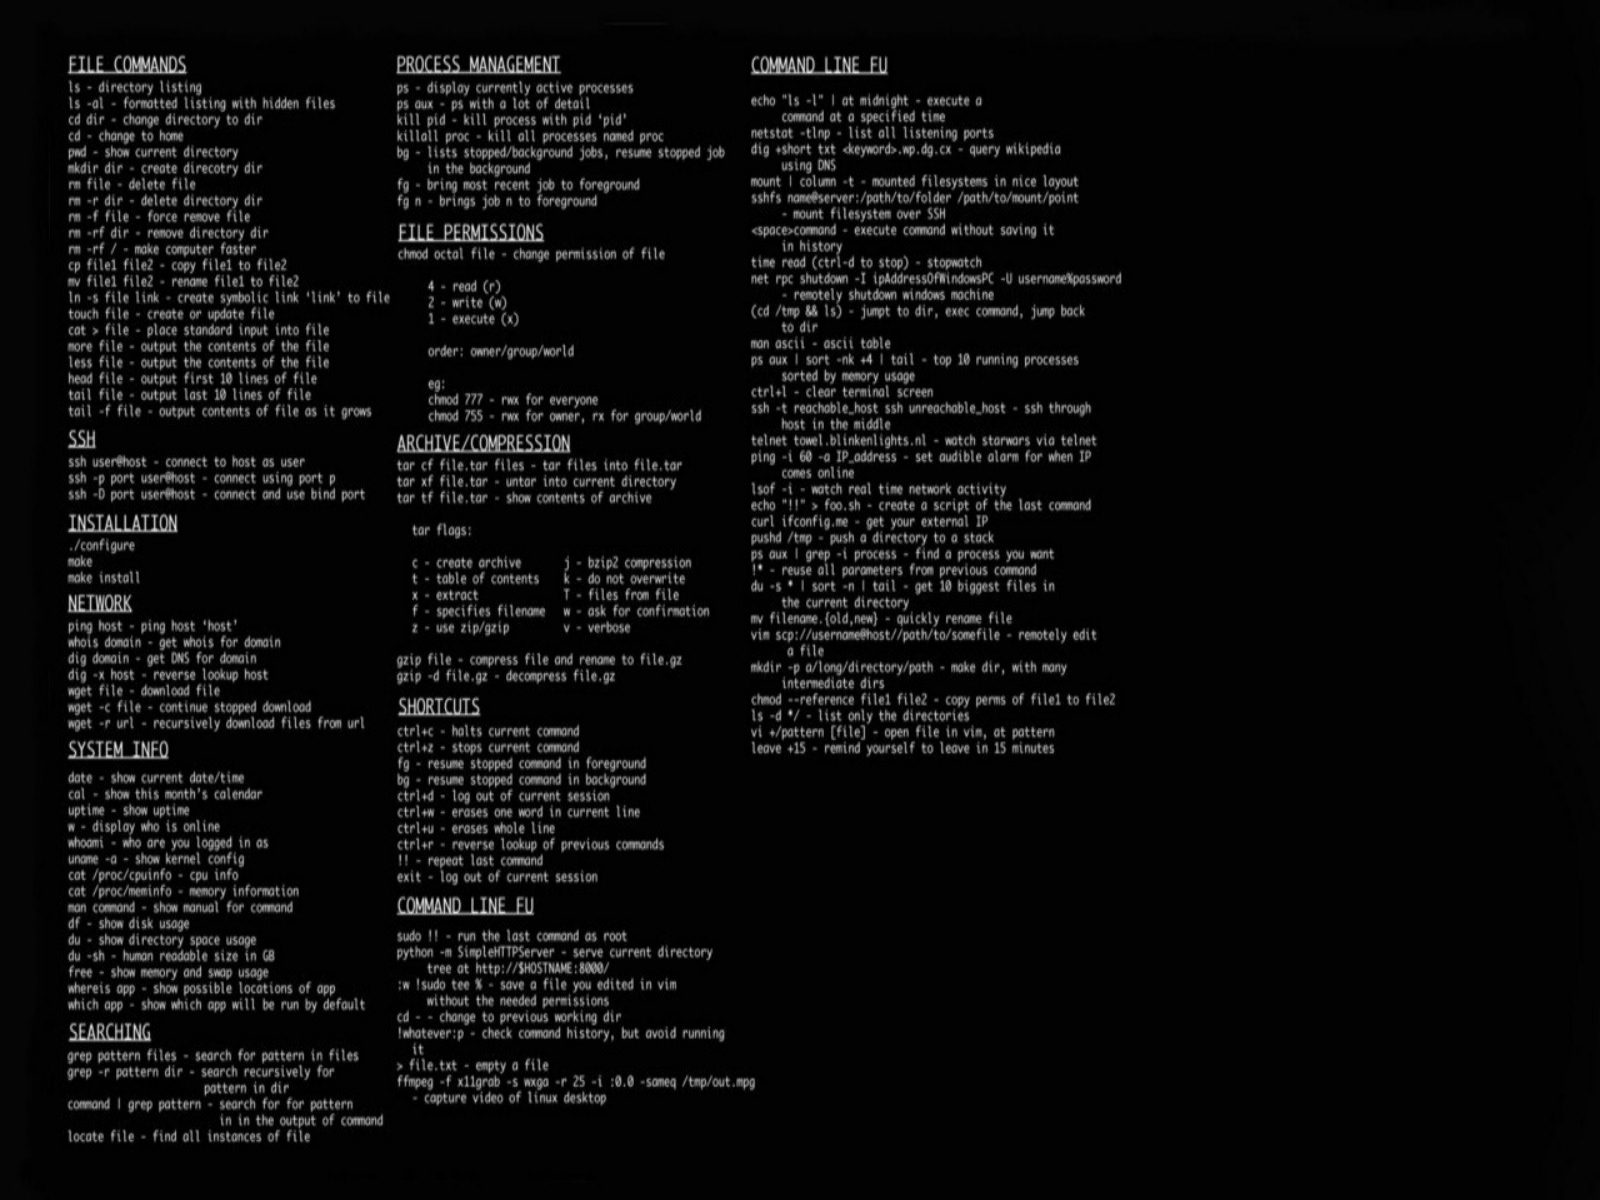 Linux Wallpapers Best Linux Background Learn Linux Online   1600x1200 1600x1200